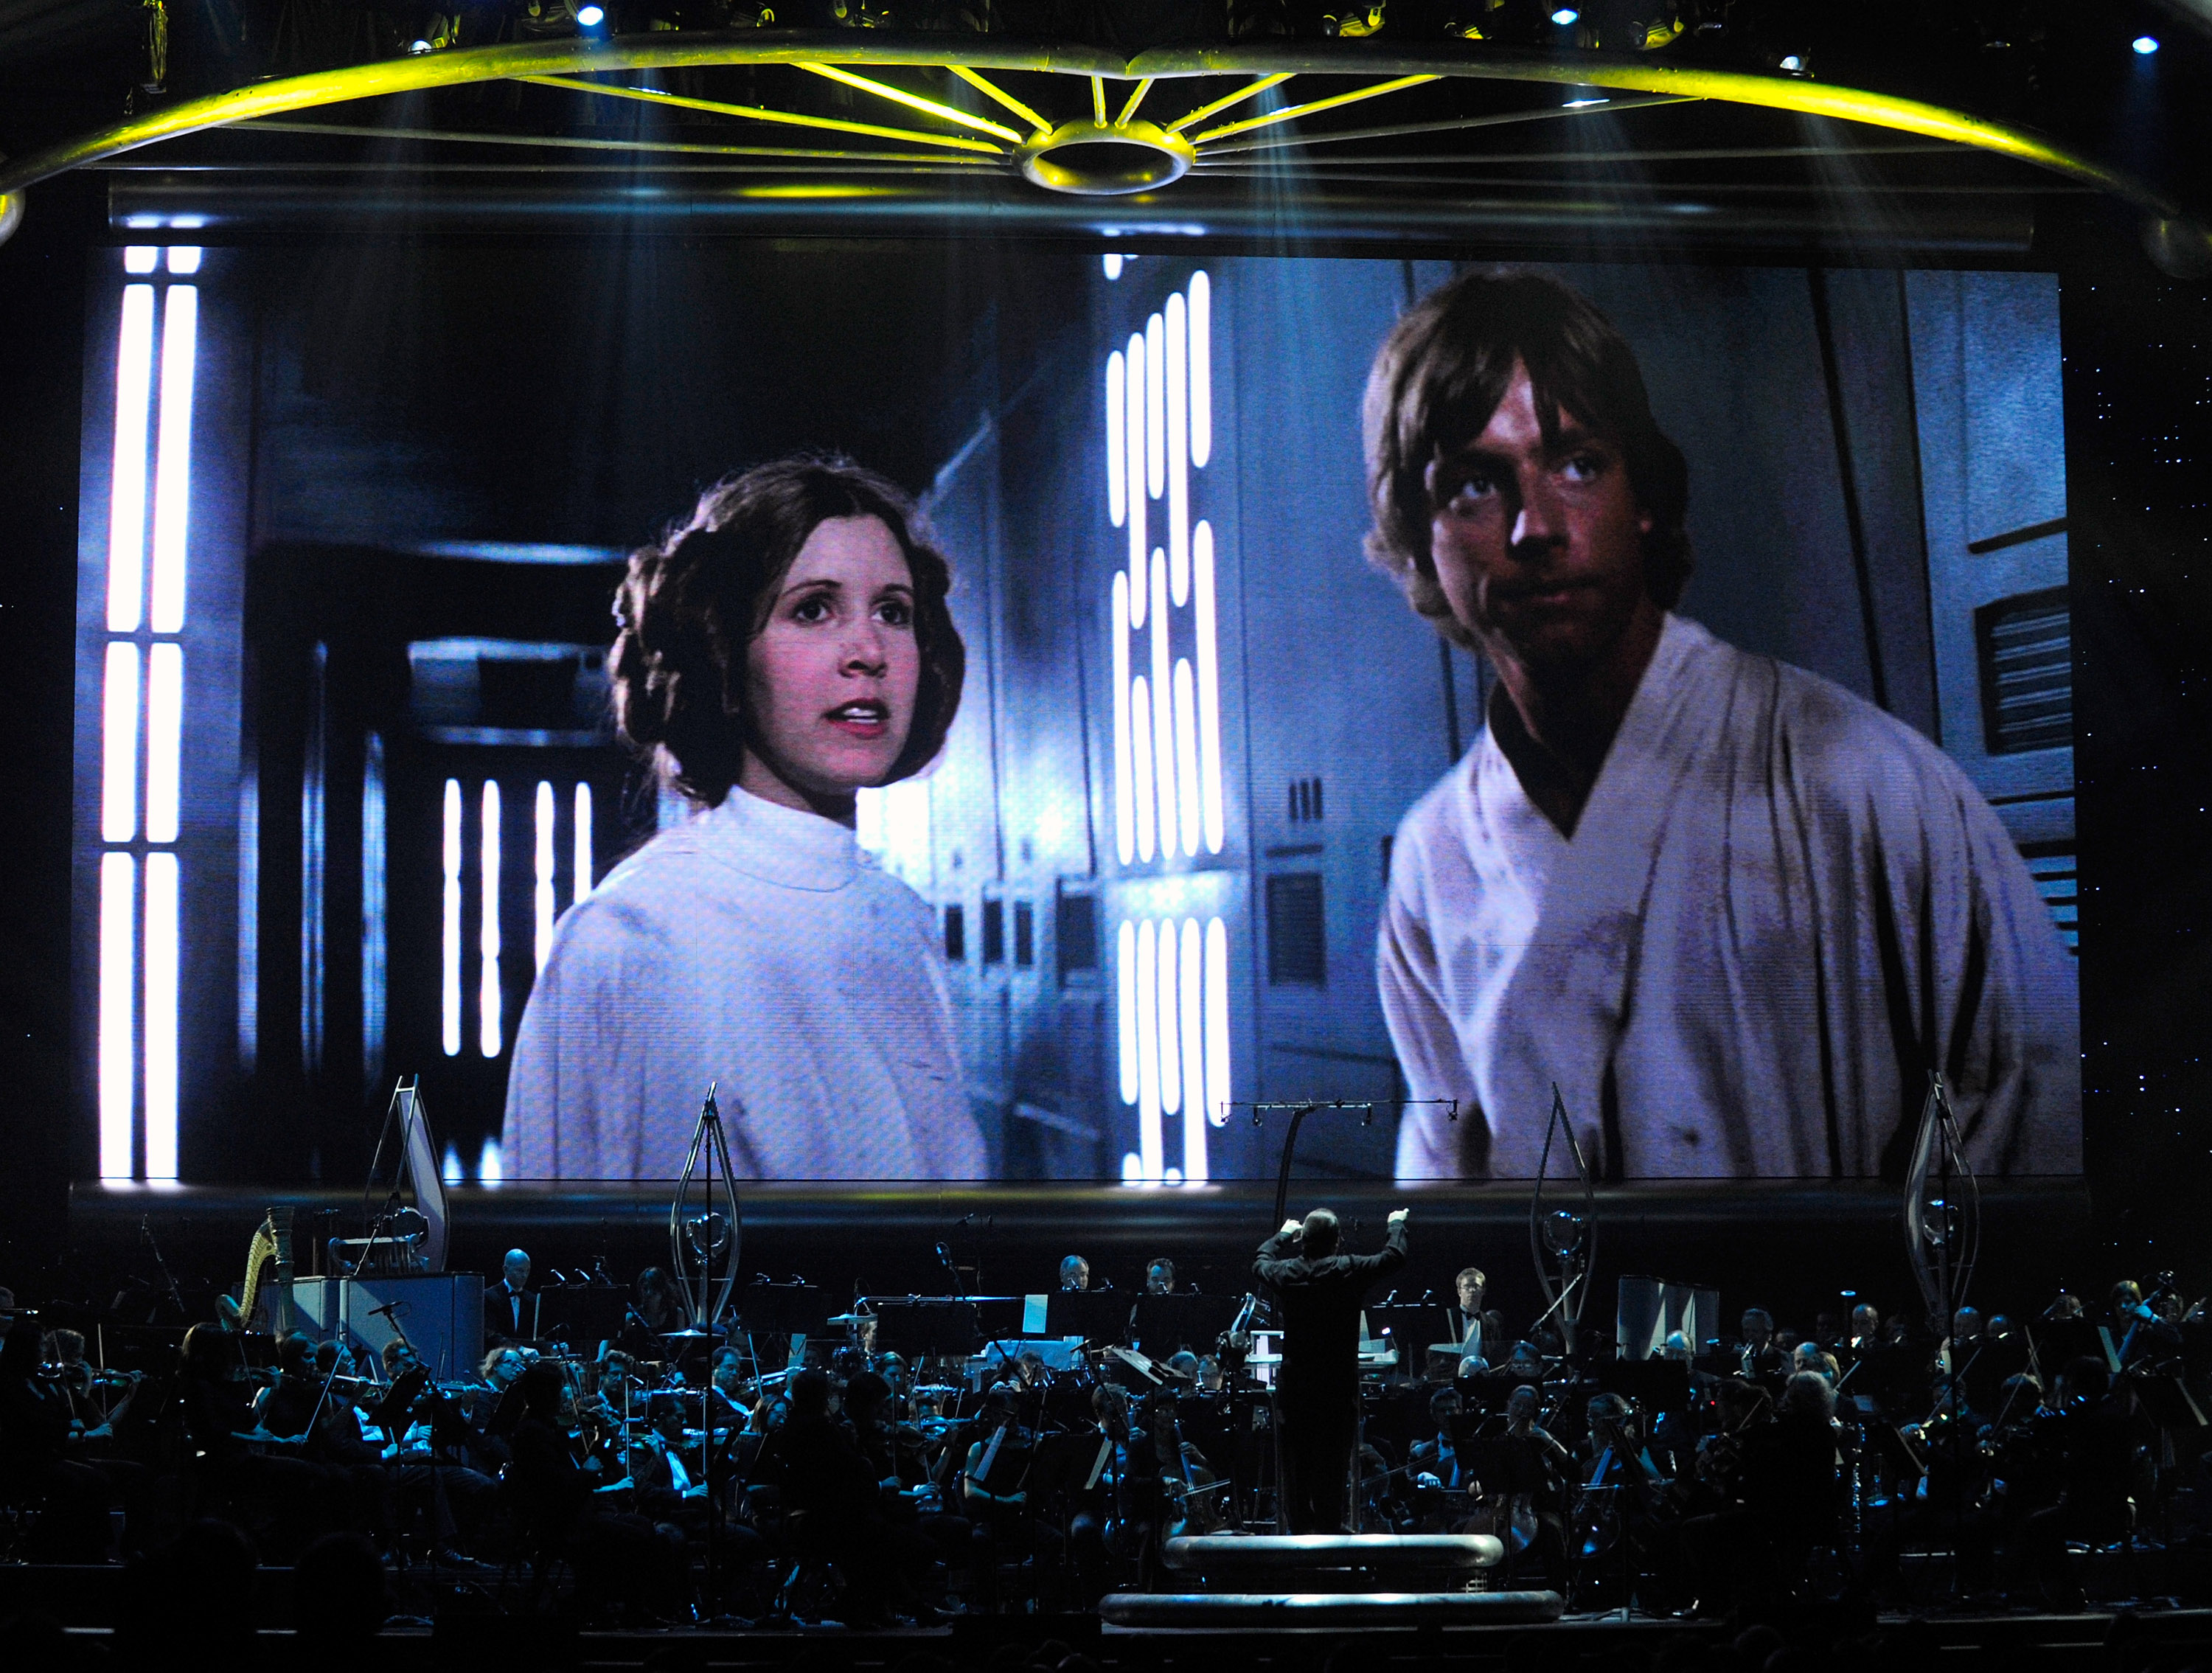 Star Wars: A New Hope becomes even more iconic with orchestra in live concert experience